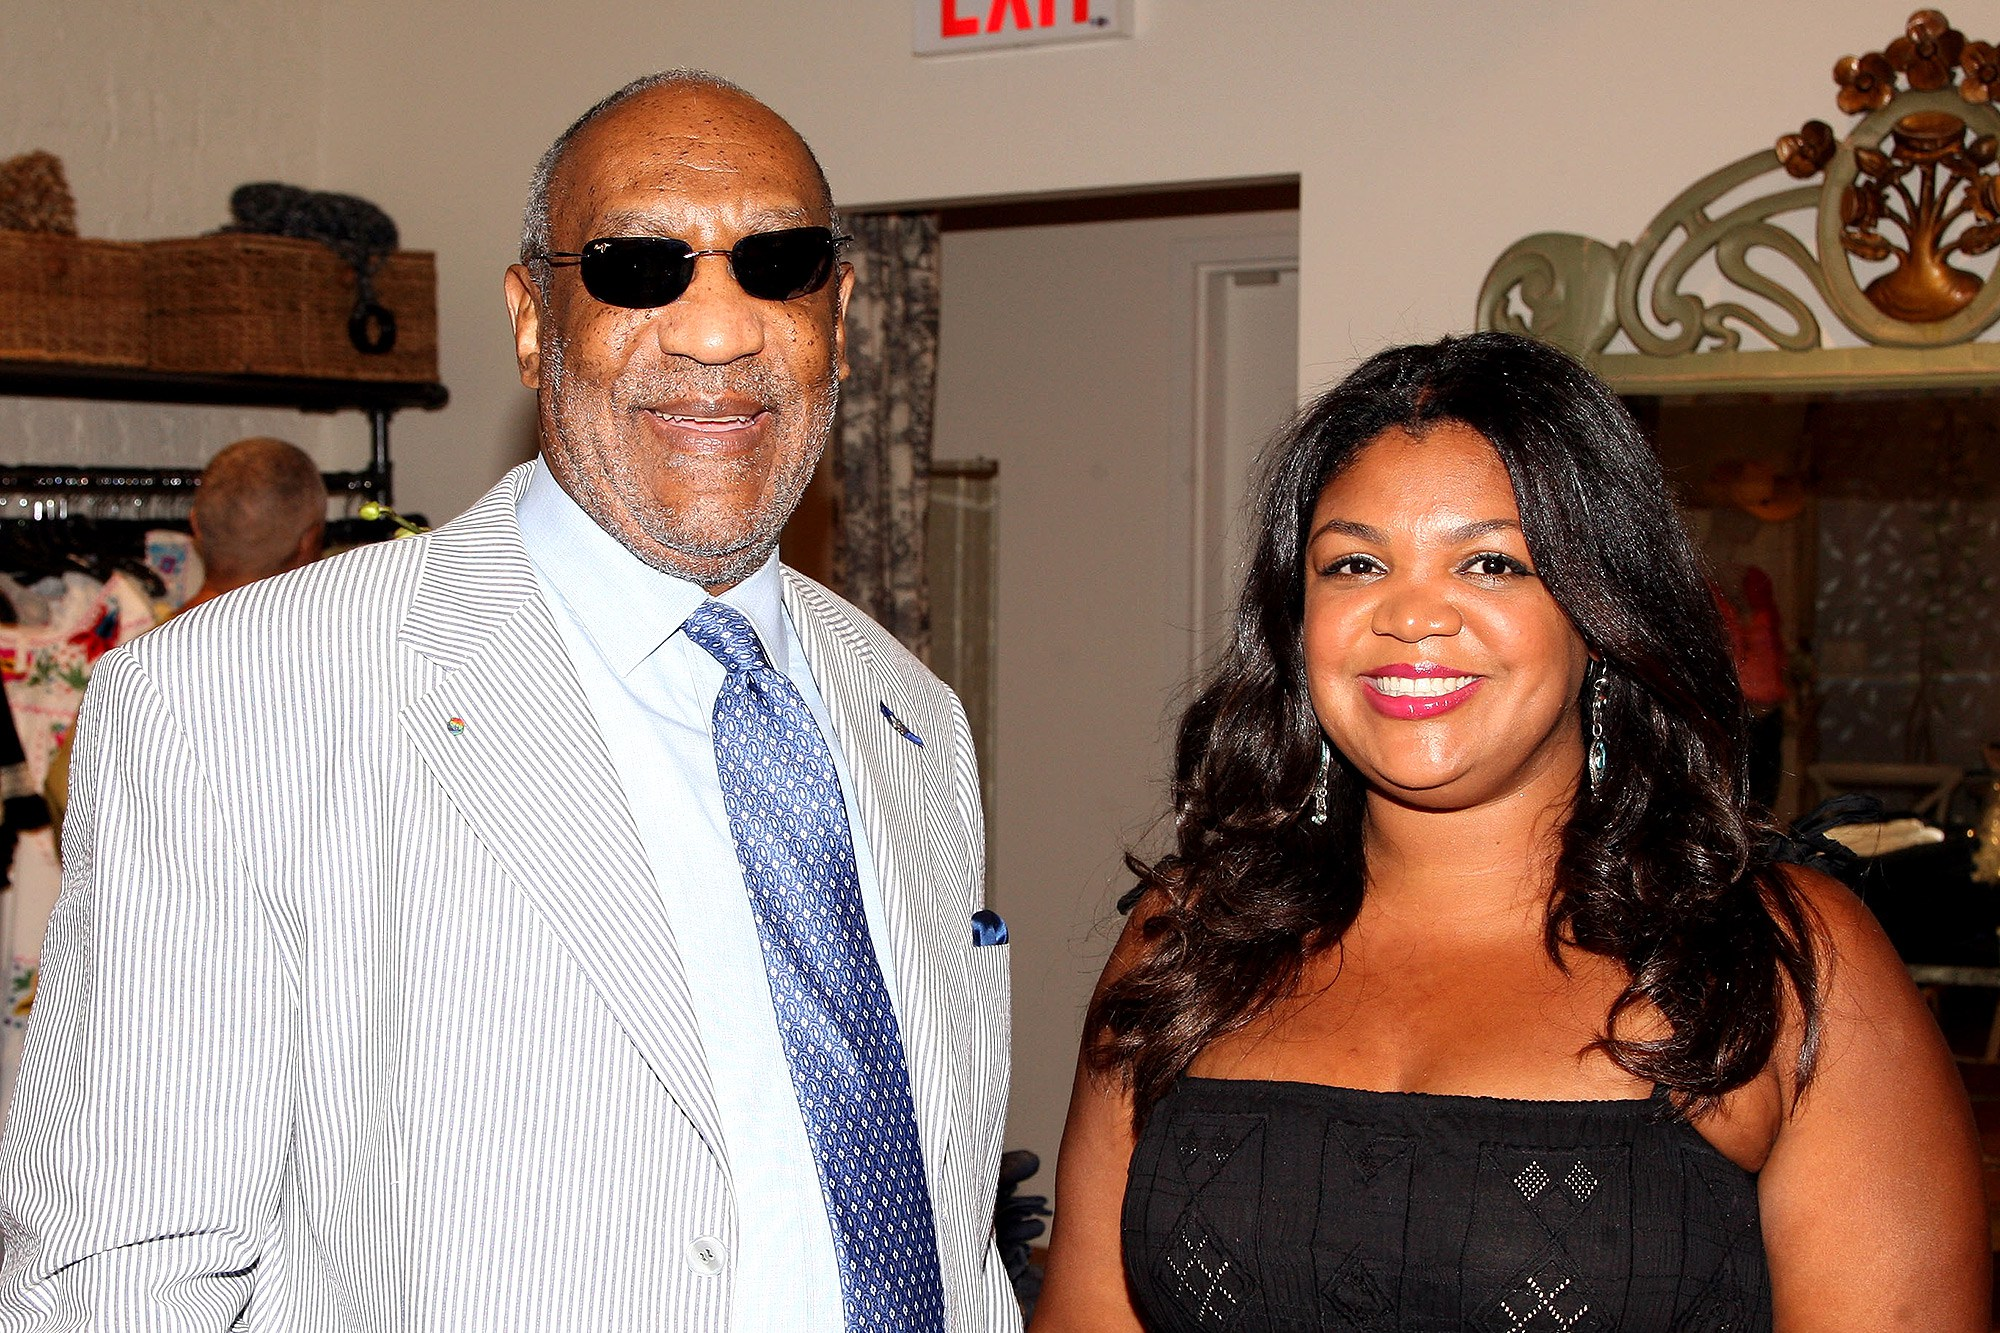 Evin Cosby and her father actor Bill Cosby attend the launch of her store pb&Caviar on Aug. 7, 2008 in New York City.